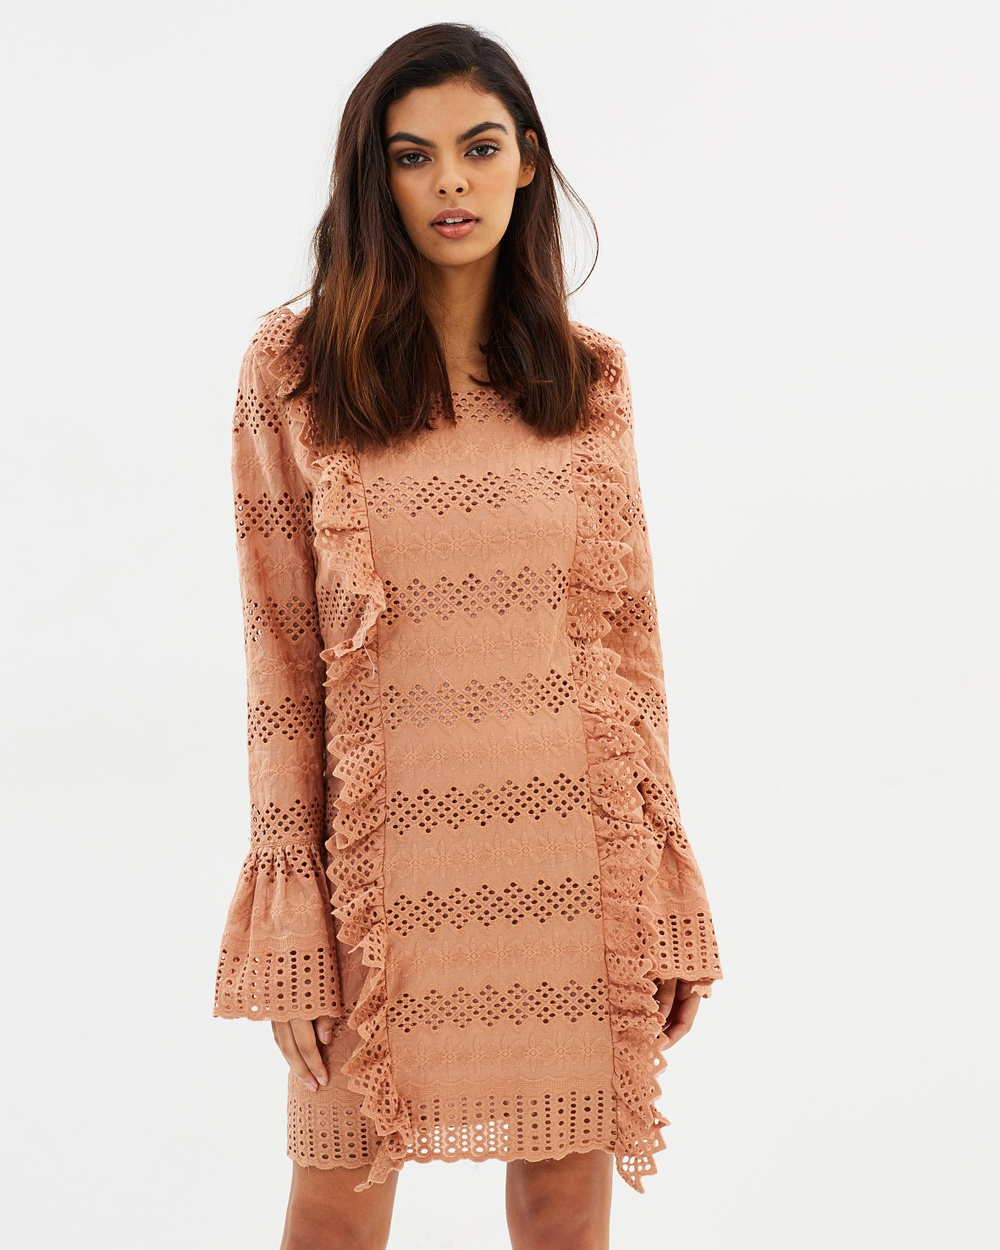 Ministry of Style Sundown Dress Dresses Latte Sundown Dress